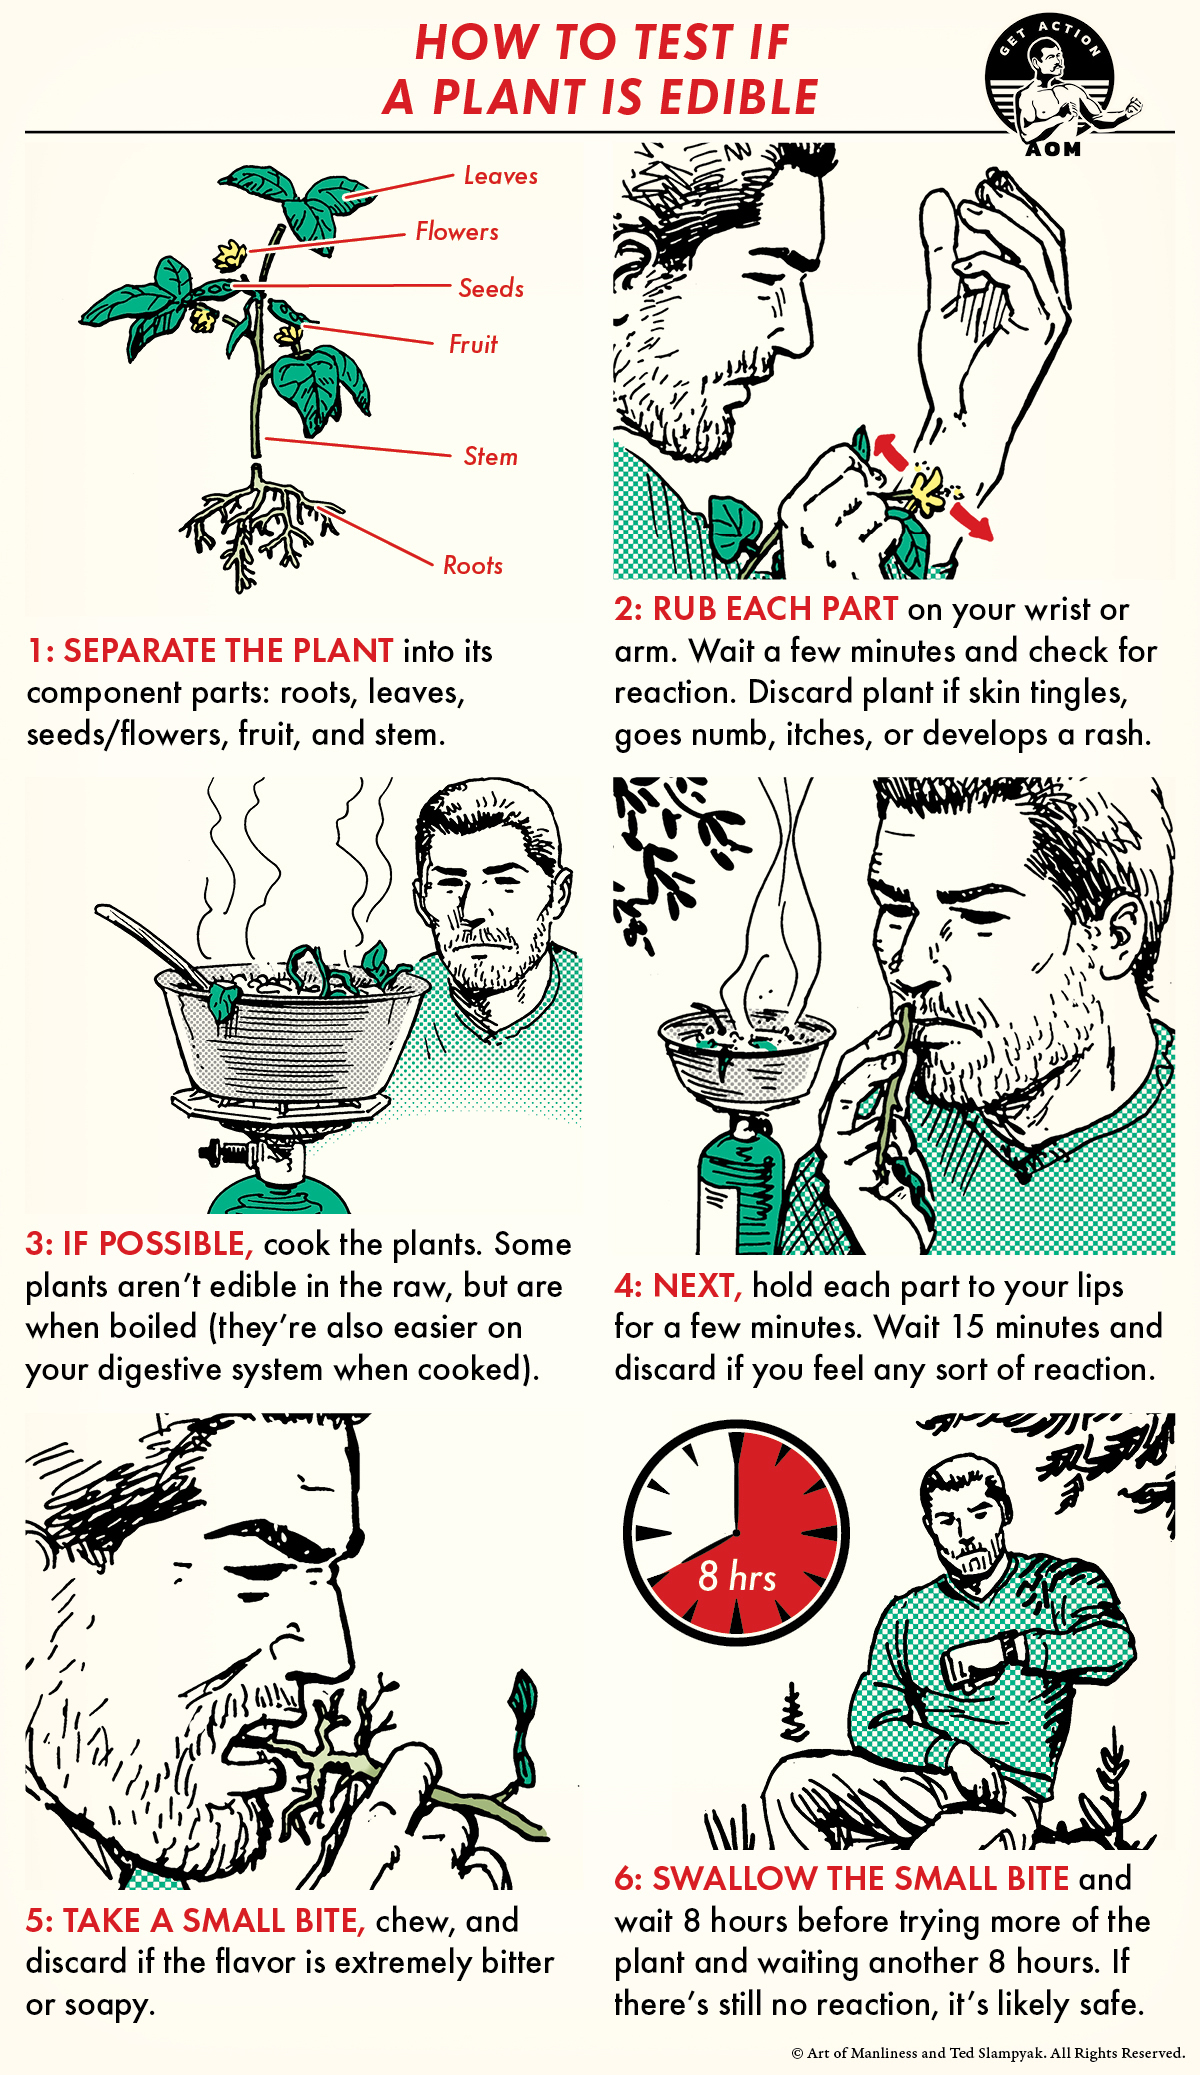 illustrated step-by-step of universal plant edibility test.